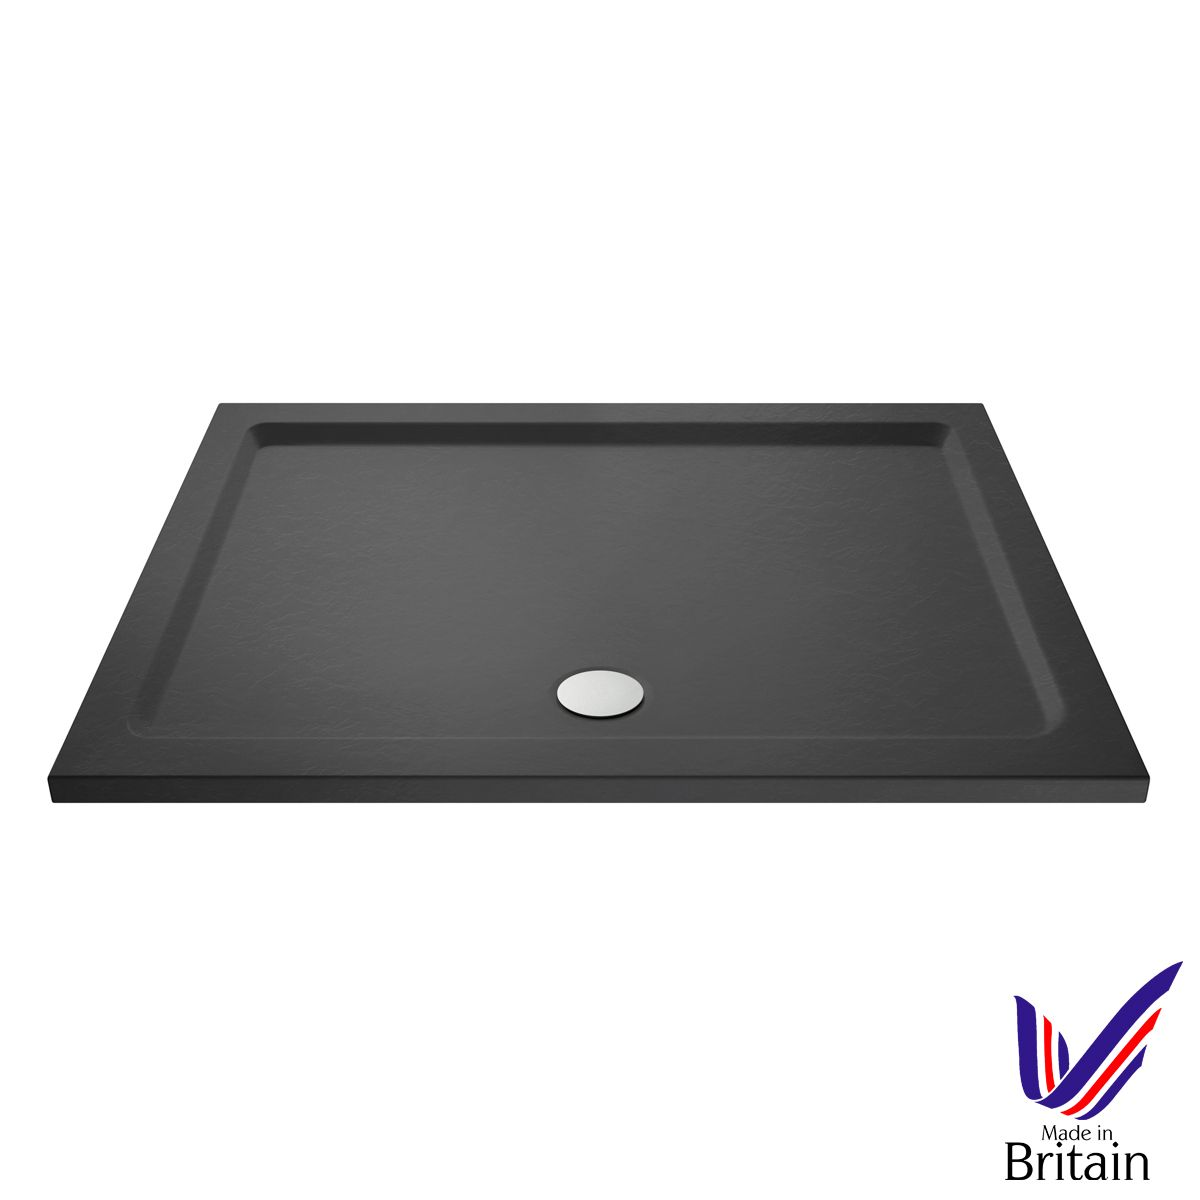 1600 x 760 Shower Tray Slate Grey Rectangular Low Profile by Pearlstone